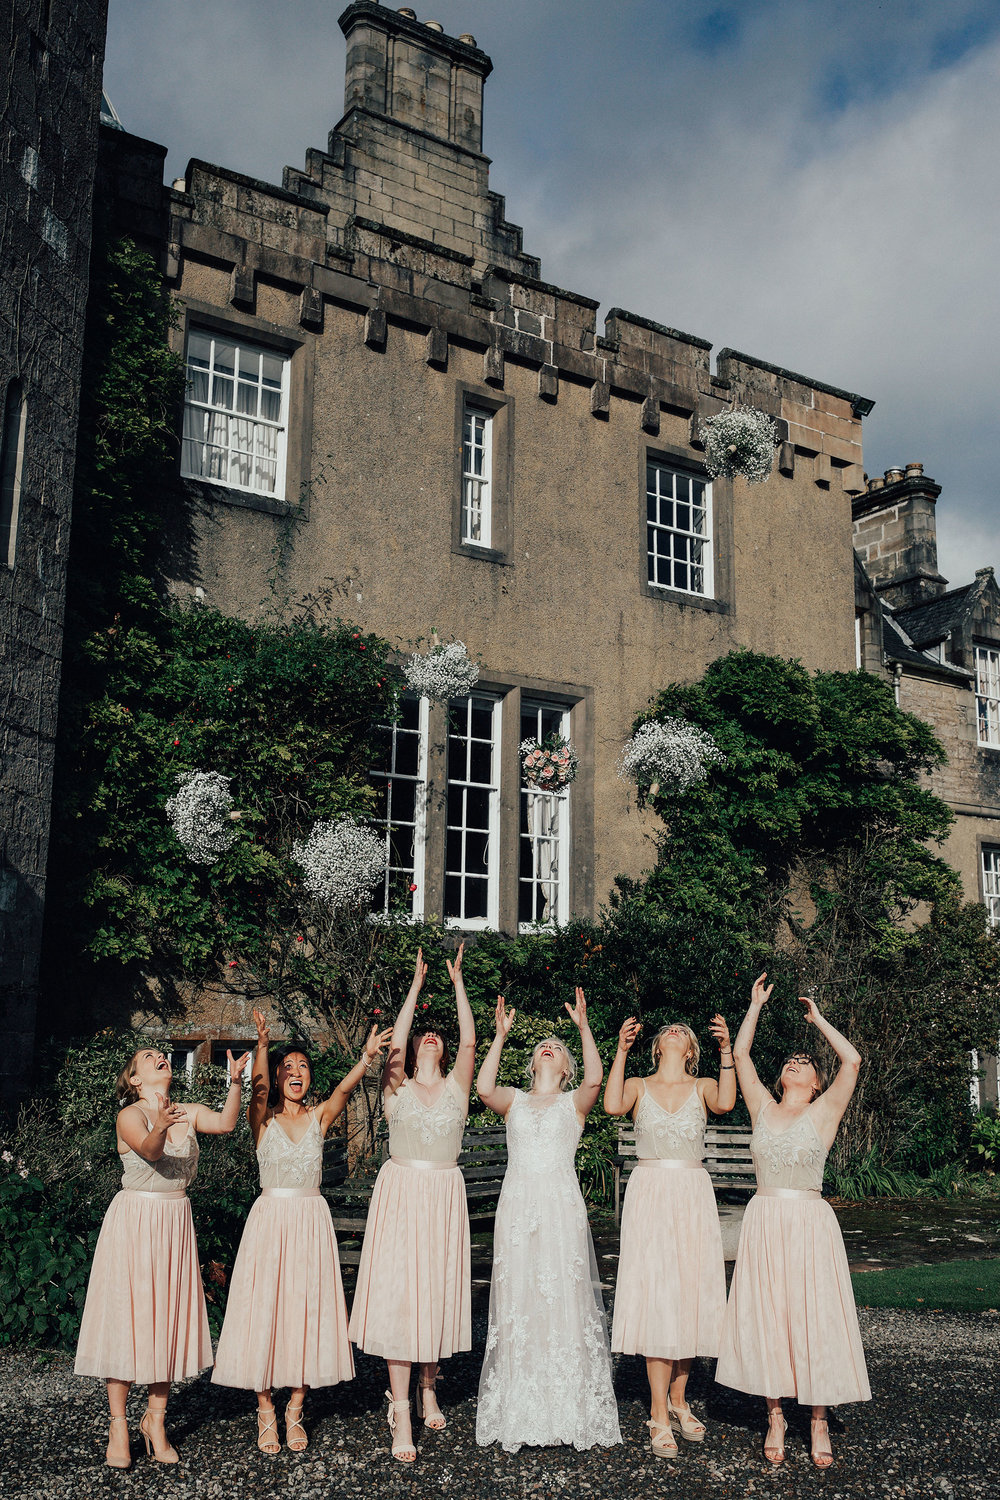 BOTURICH_CASTLE_WEDDING_PHOTOGRAPHER_PJ_PHILLIPS_PHOTOGRAPHY_96.jpg